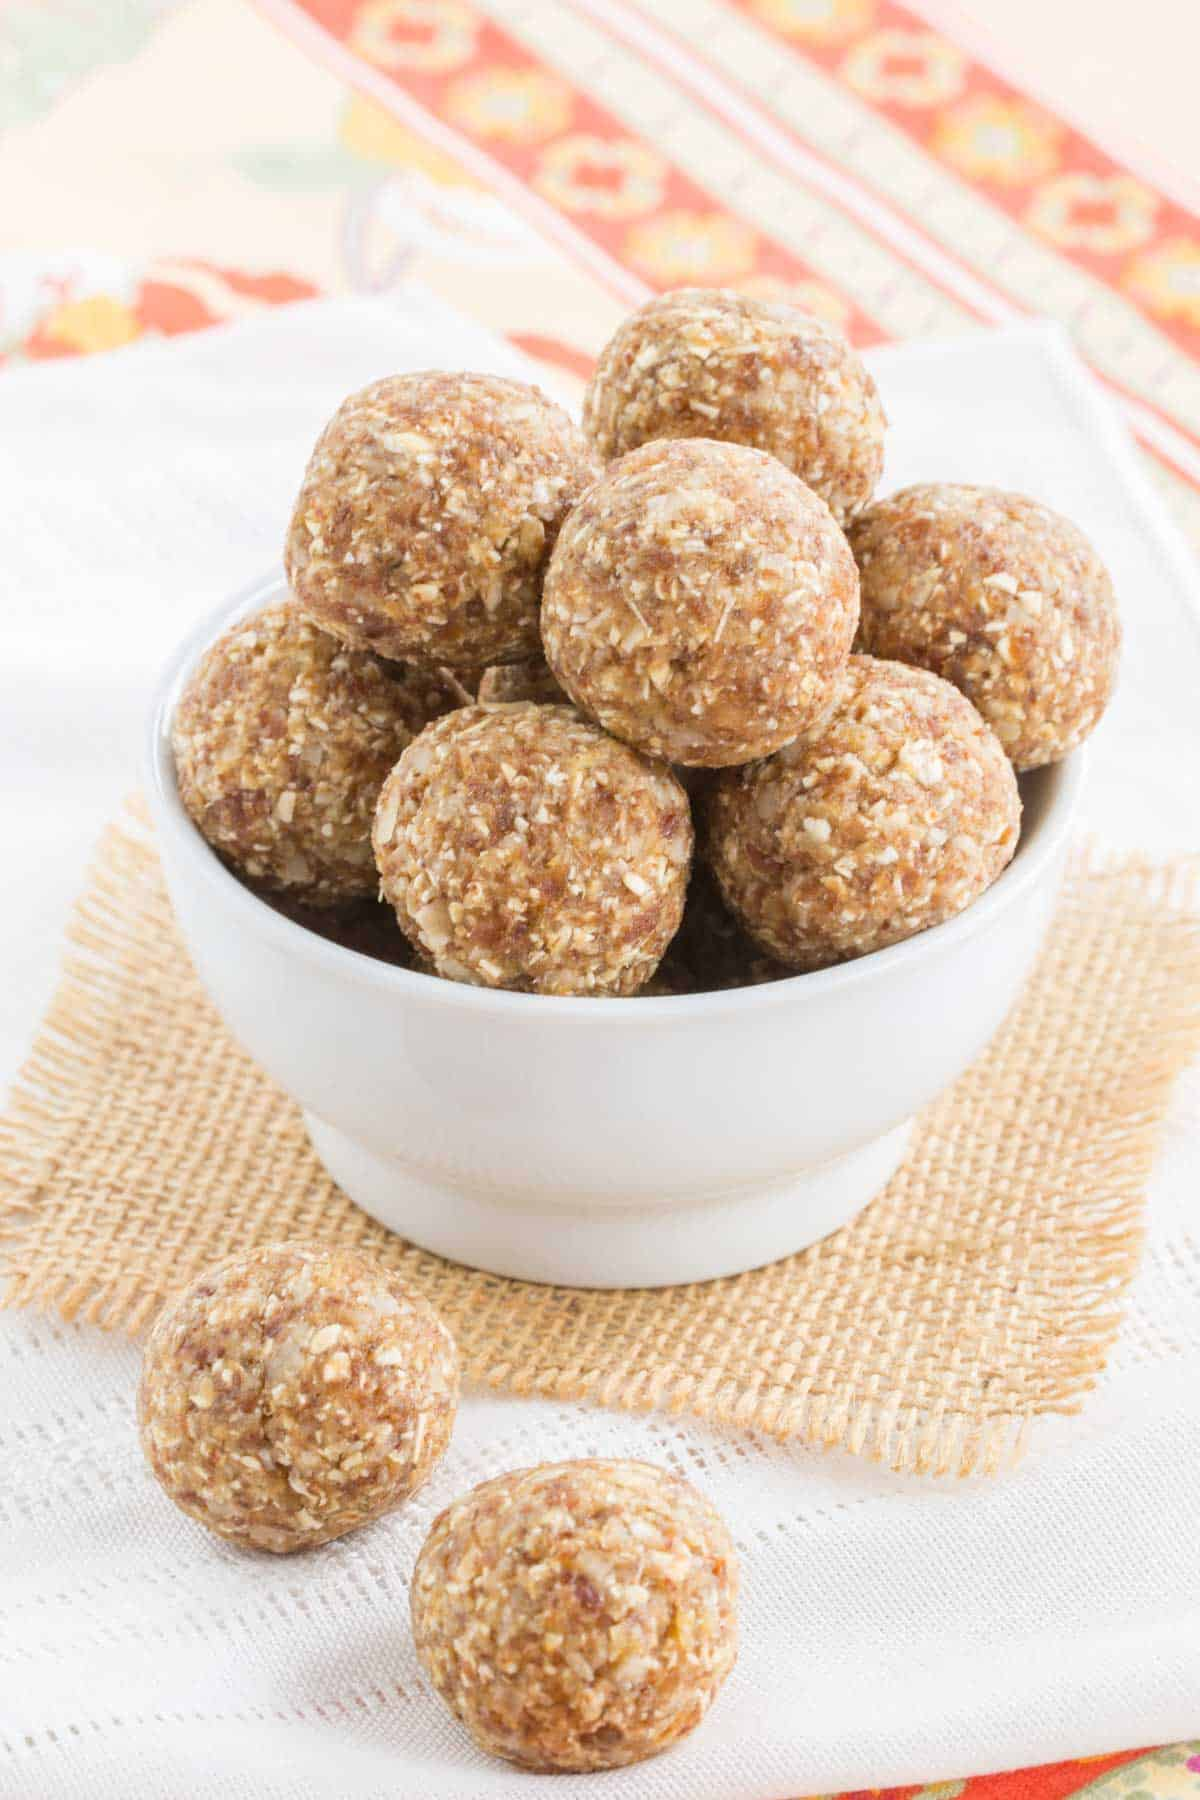 Pineapple coconut energy balls in a small white bowl on a piece of burlap and two more on a cloth napkin